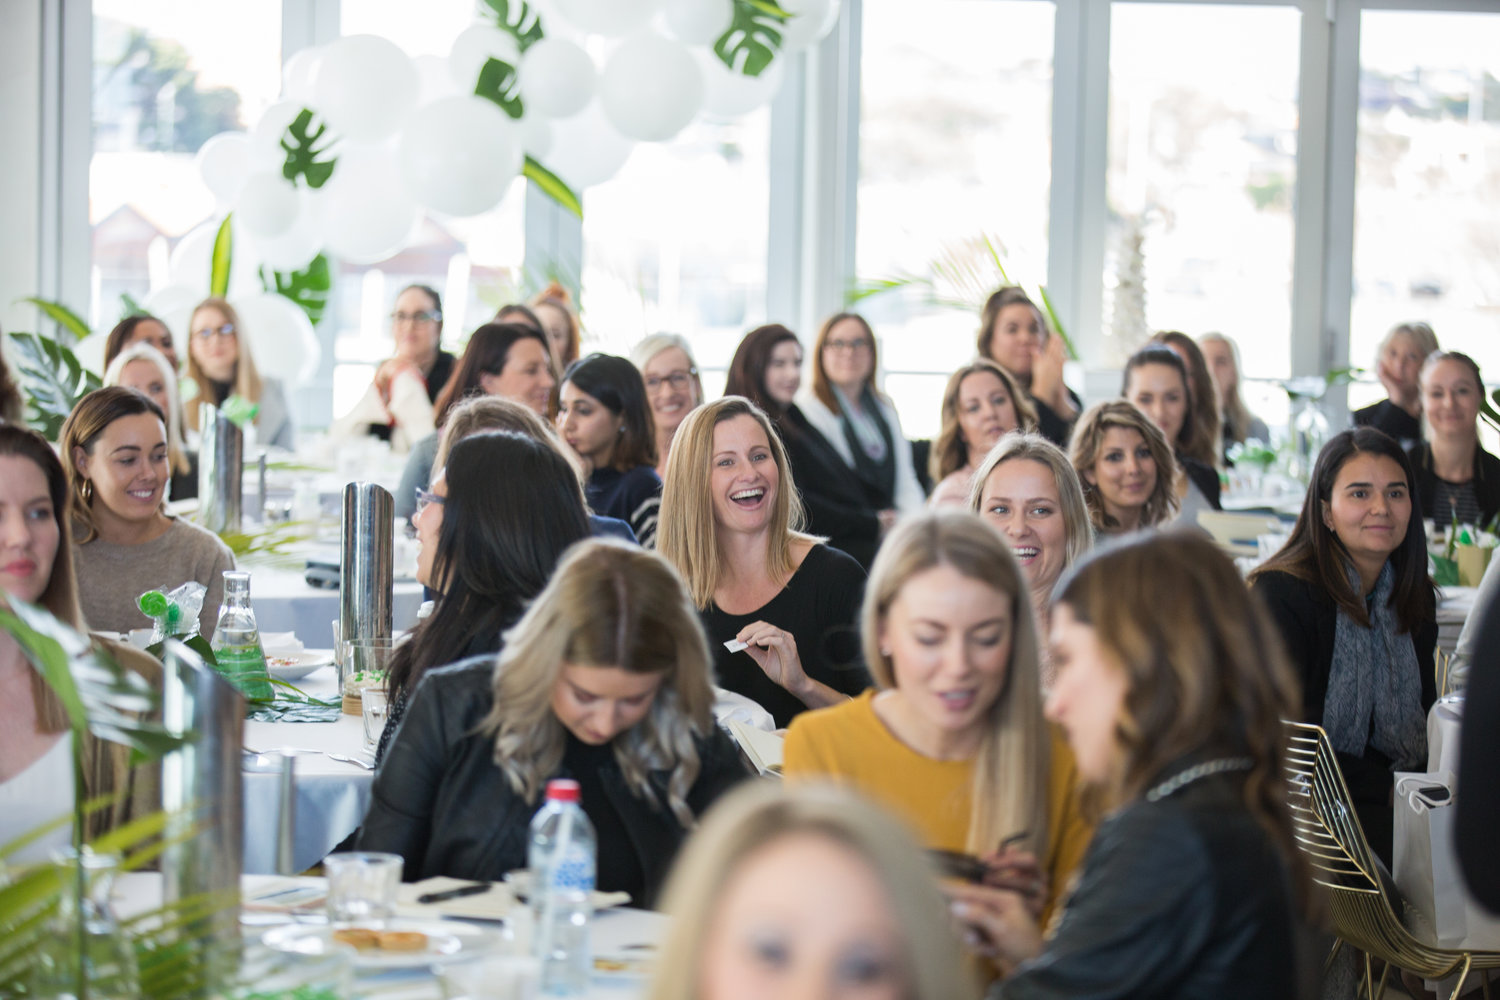 INSTAGRAM & BUSINESS MASTER CLASS 2019 - REFRESH YOUR KNOWLEDGE PLUS LEARN NEW WAYS TO GROW YOUR INSTAGRAM IN 2019. DISCOVER HOW TO WORK WITH INFLUENCERS PLUS PRACTICAL BUSINESS STRATEGIES.